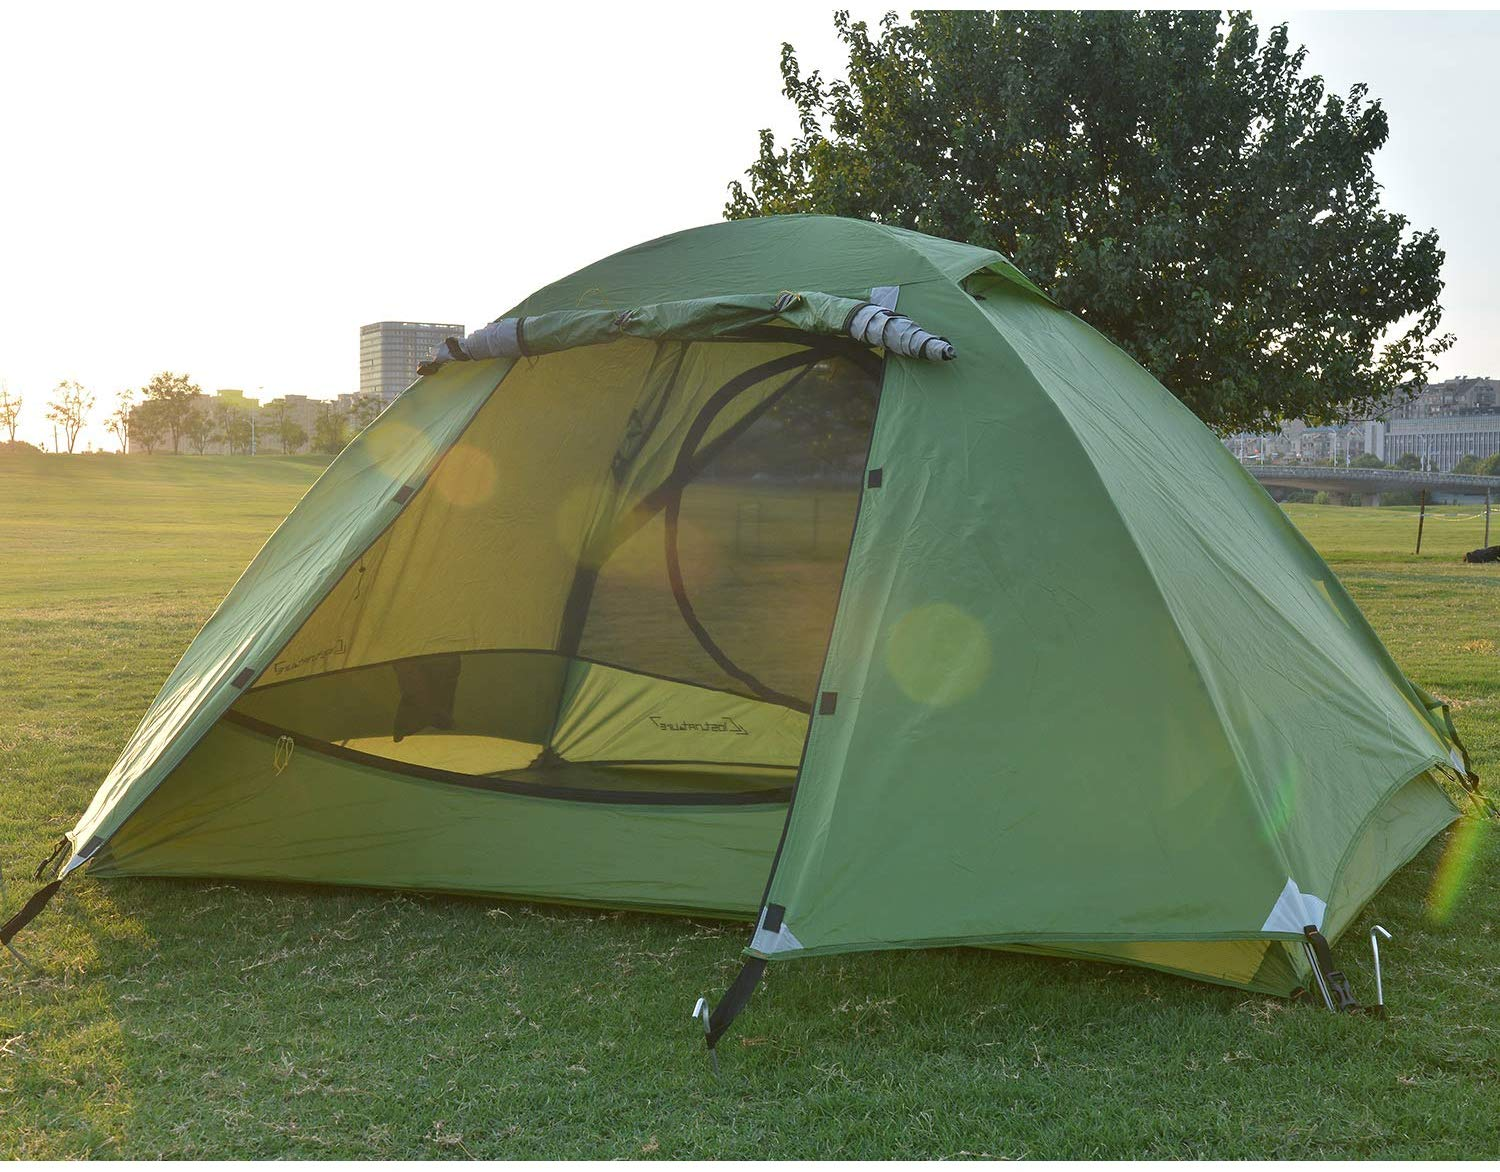 A Winter Camping Tent